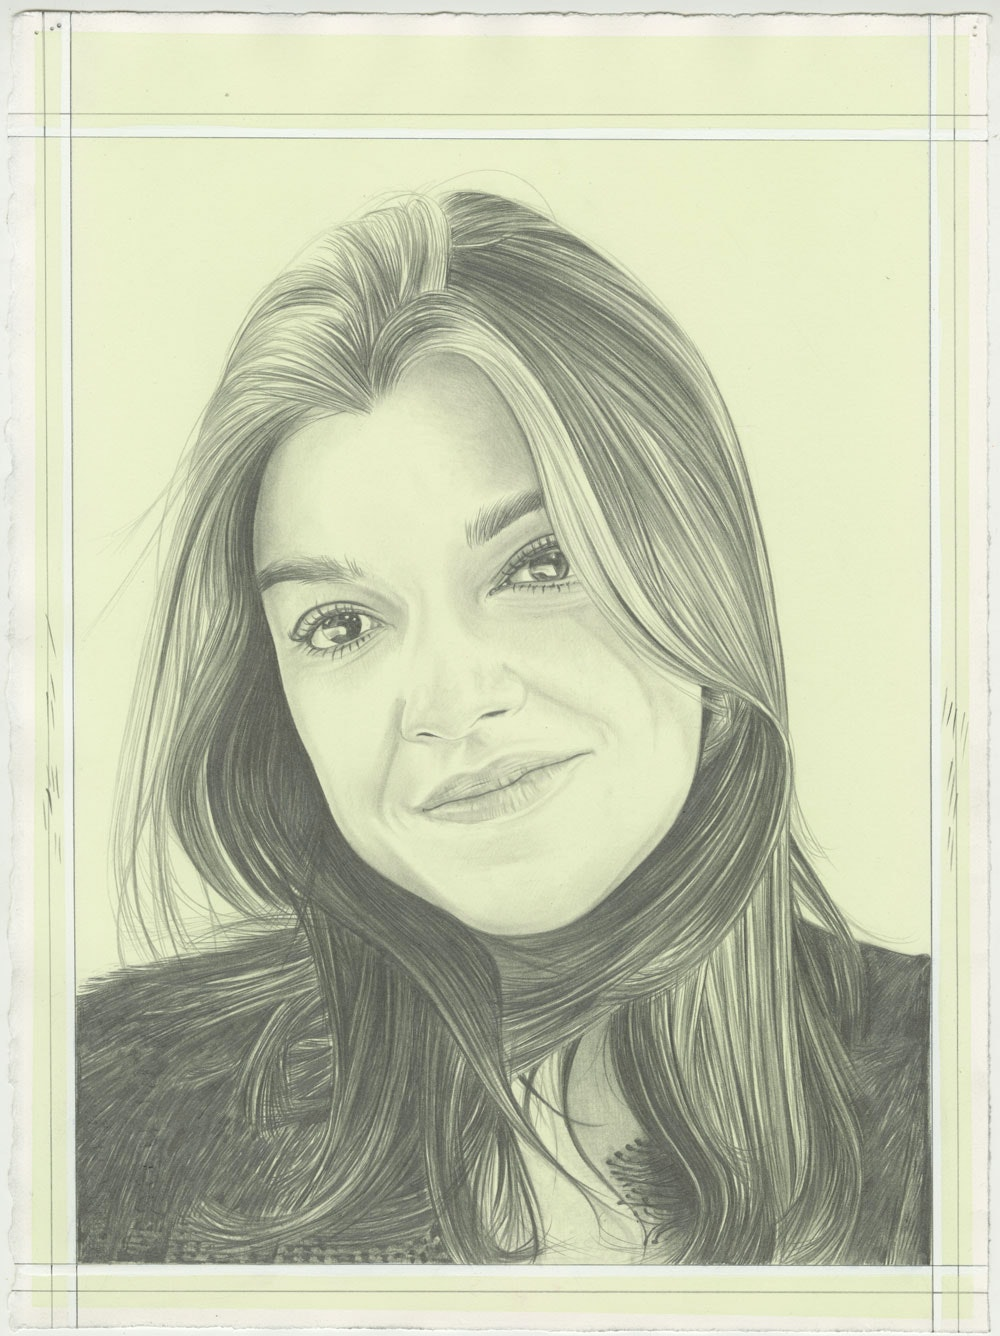 Portrait of Jasmine Wahi. Pencil on Paper by Phong H. Bui